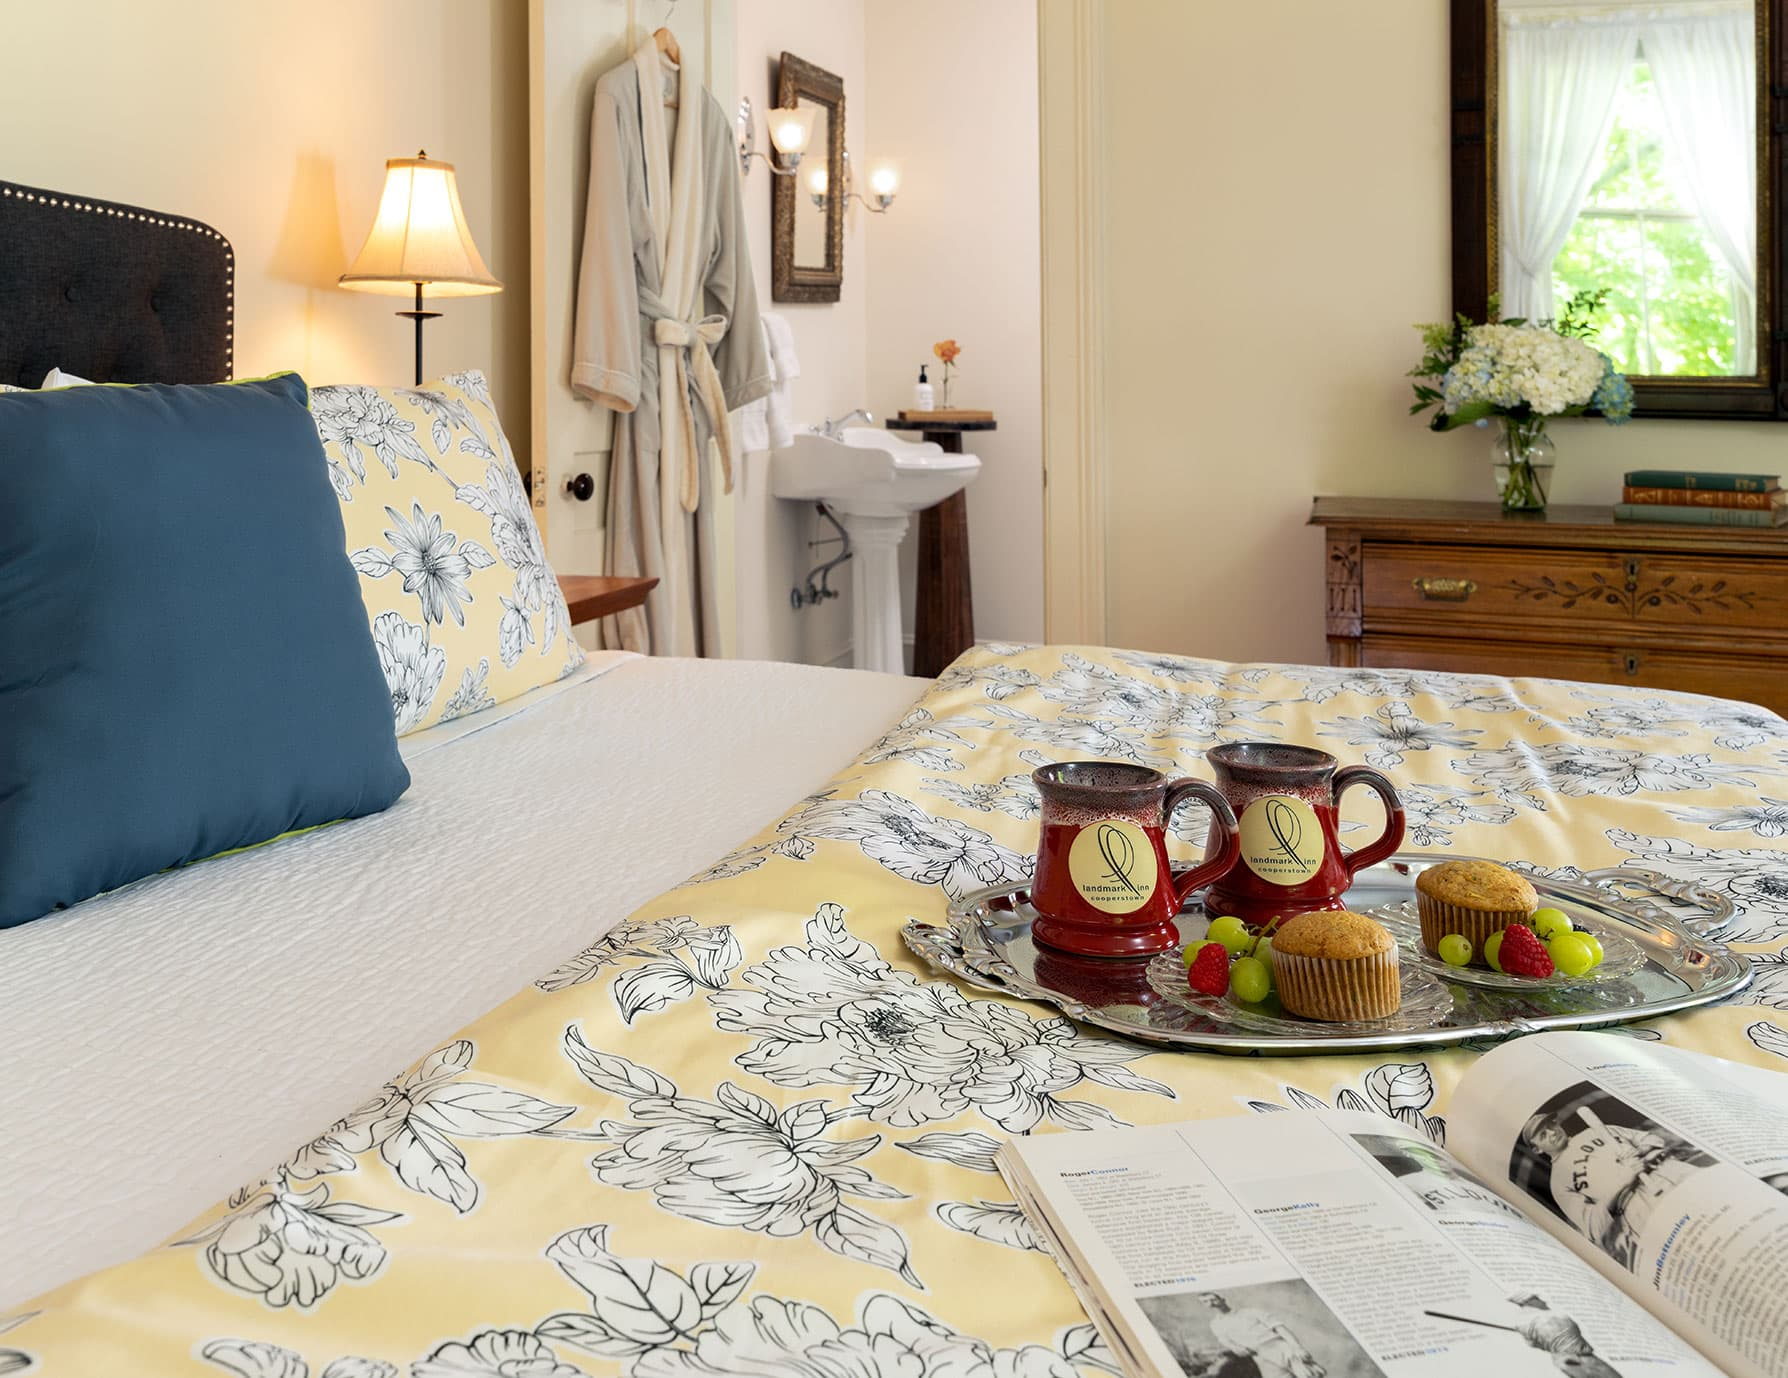 Tray with coffee and snacks for two on bed at a Cooperstown Bed and Breakfast